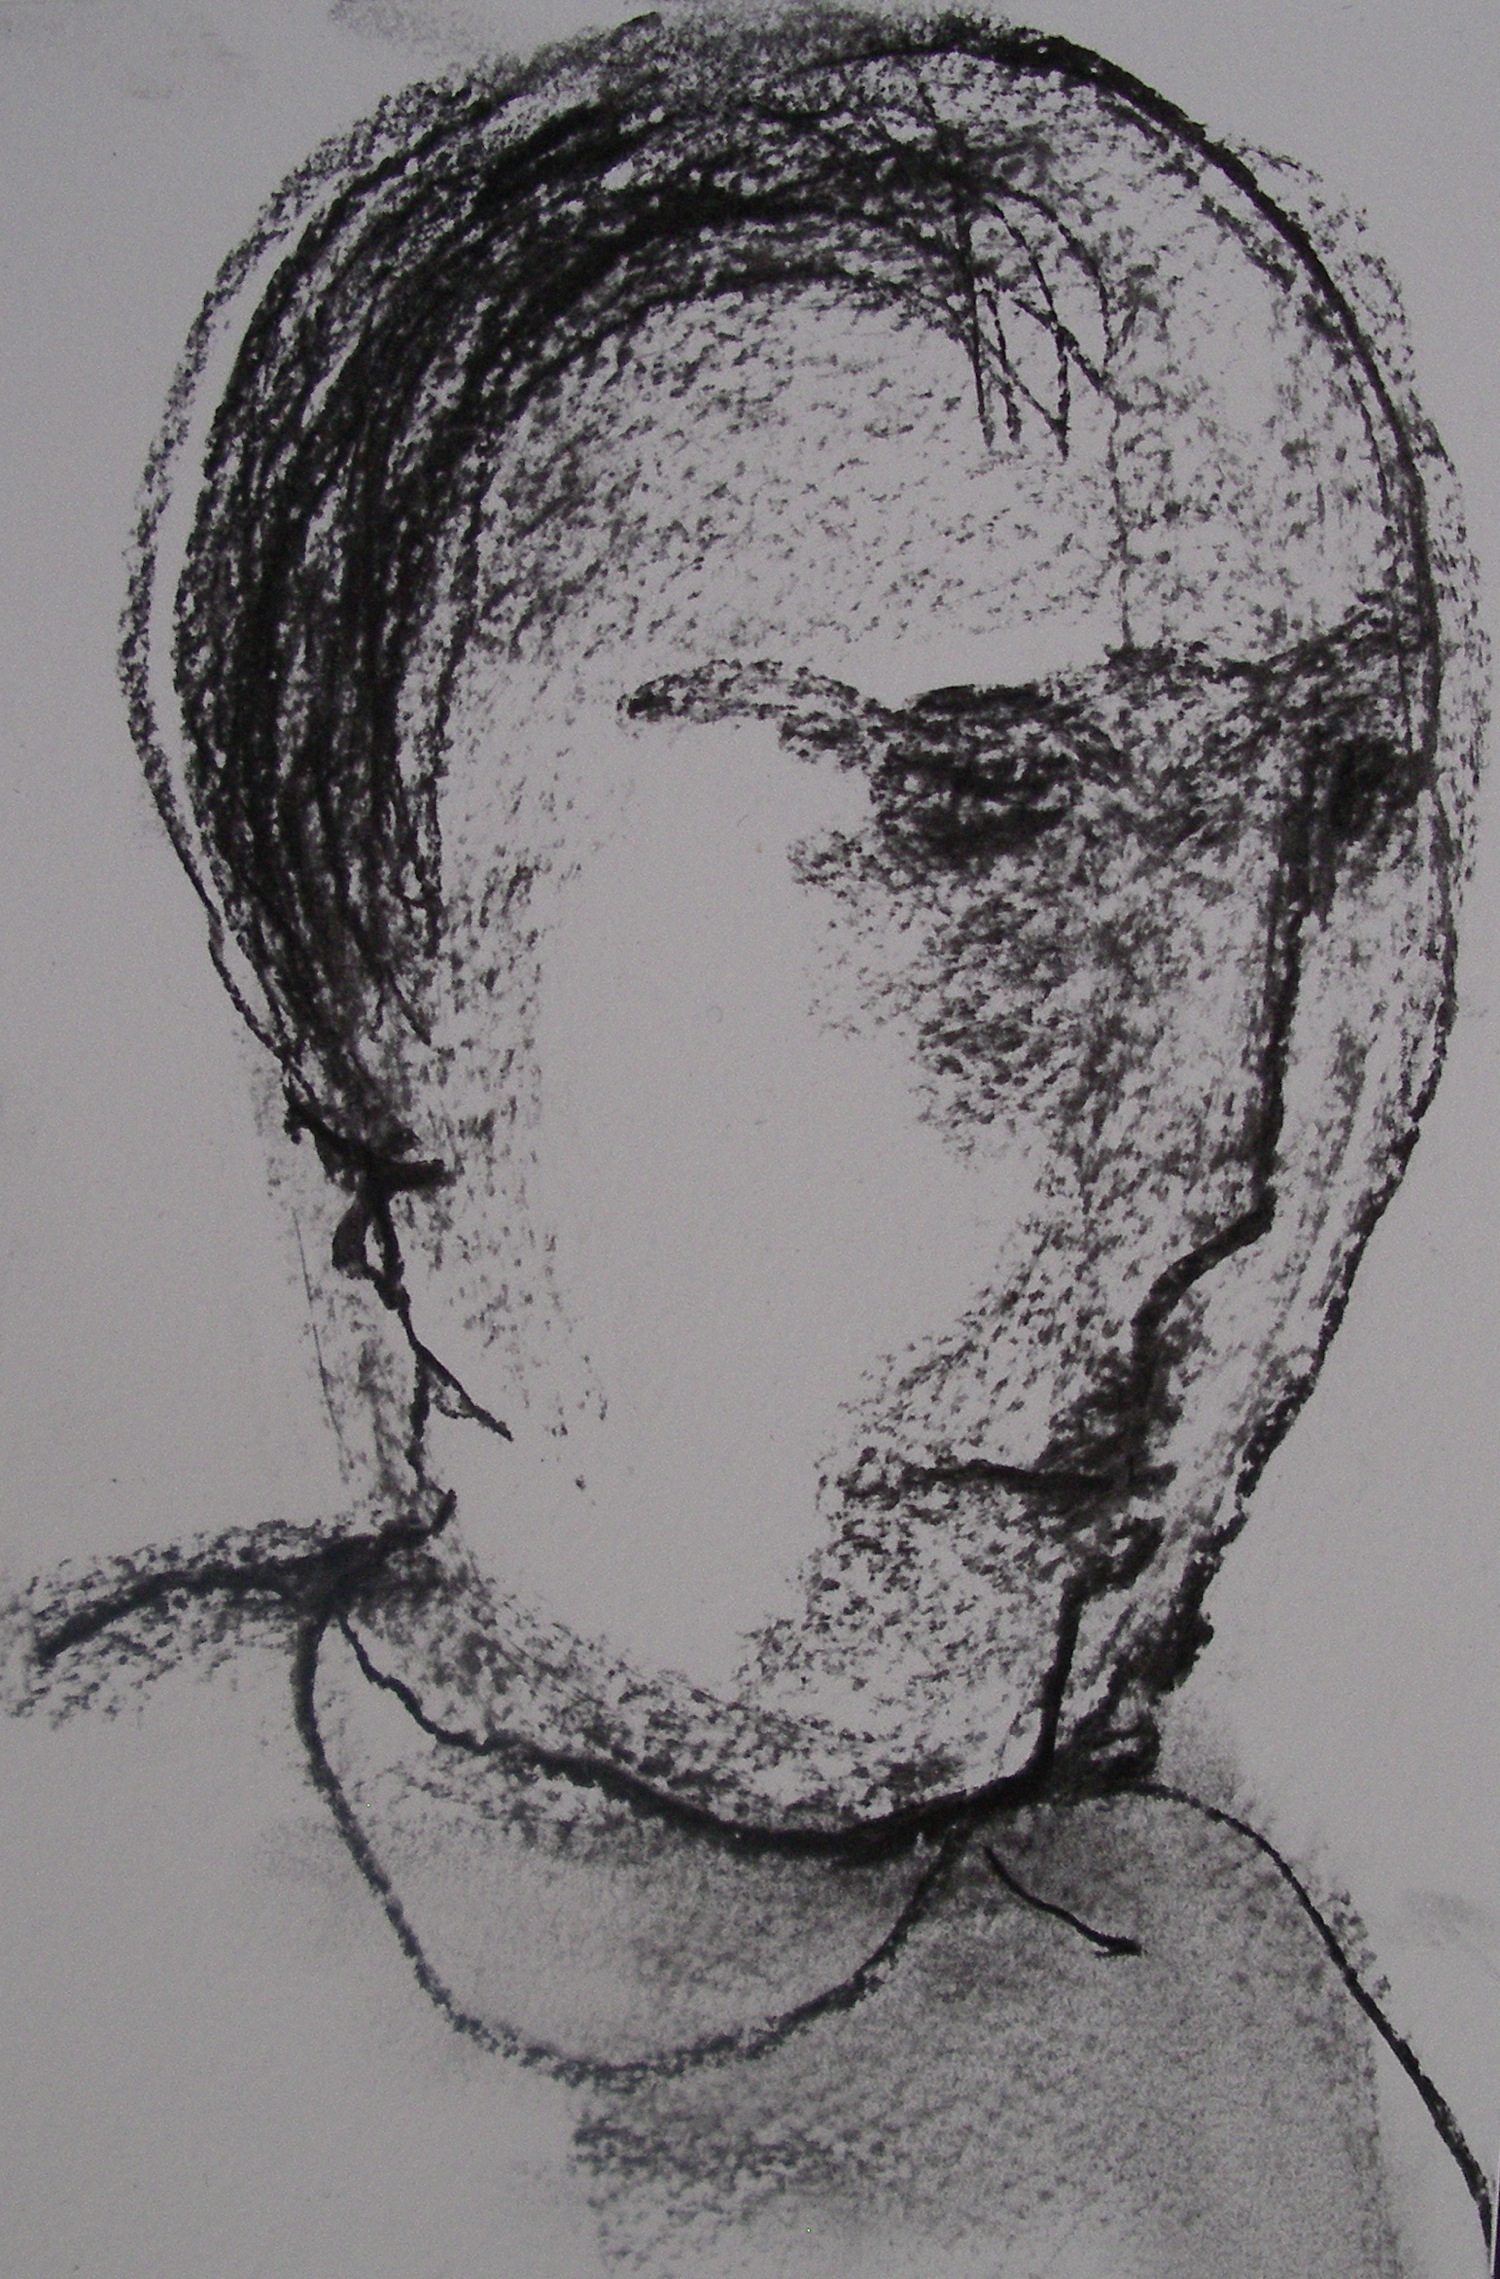 Portrait_Drawing charcoal [13x20cm] 2013 Laura Hudson-2.jpg